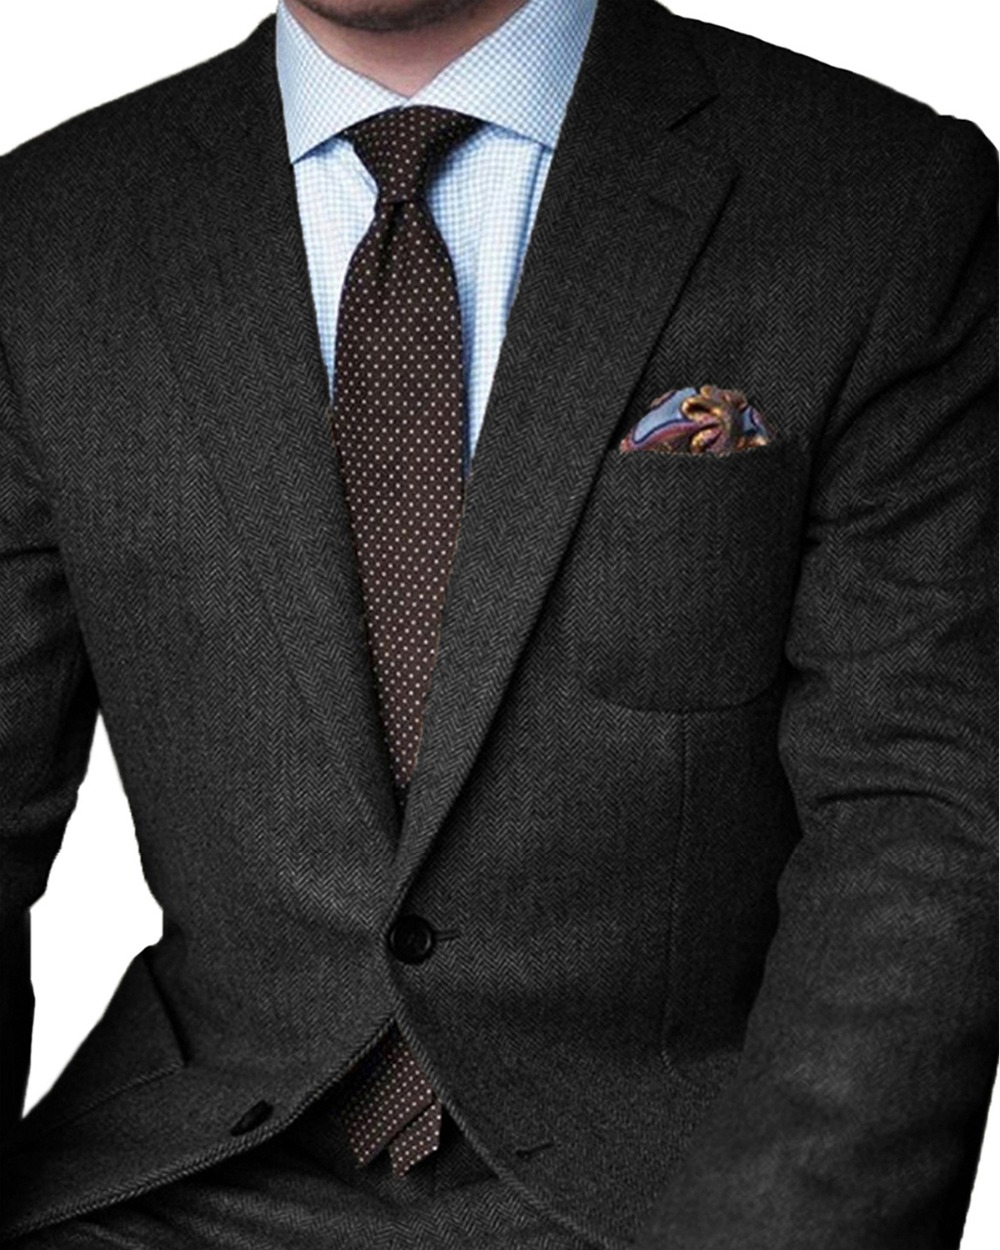 2020 Formal Winter Dark Grey Herringbone Business Men Suits Wedding Tailored Groom Tuxedo Slim Fit Groomsmen Blazer Masculino